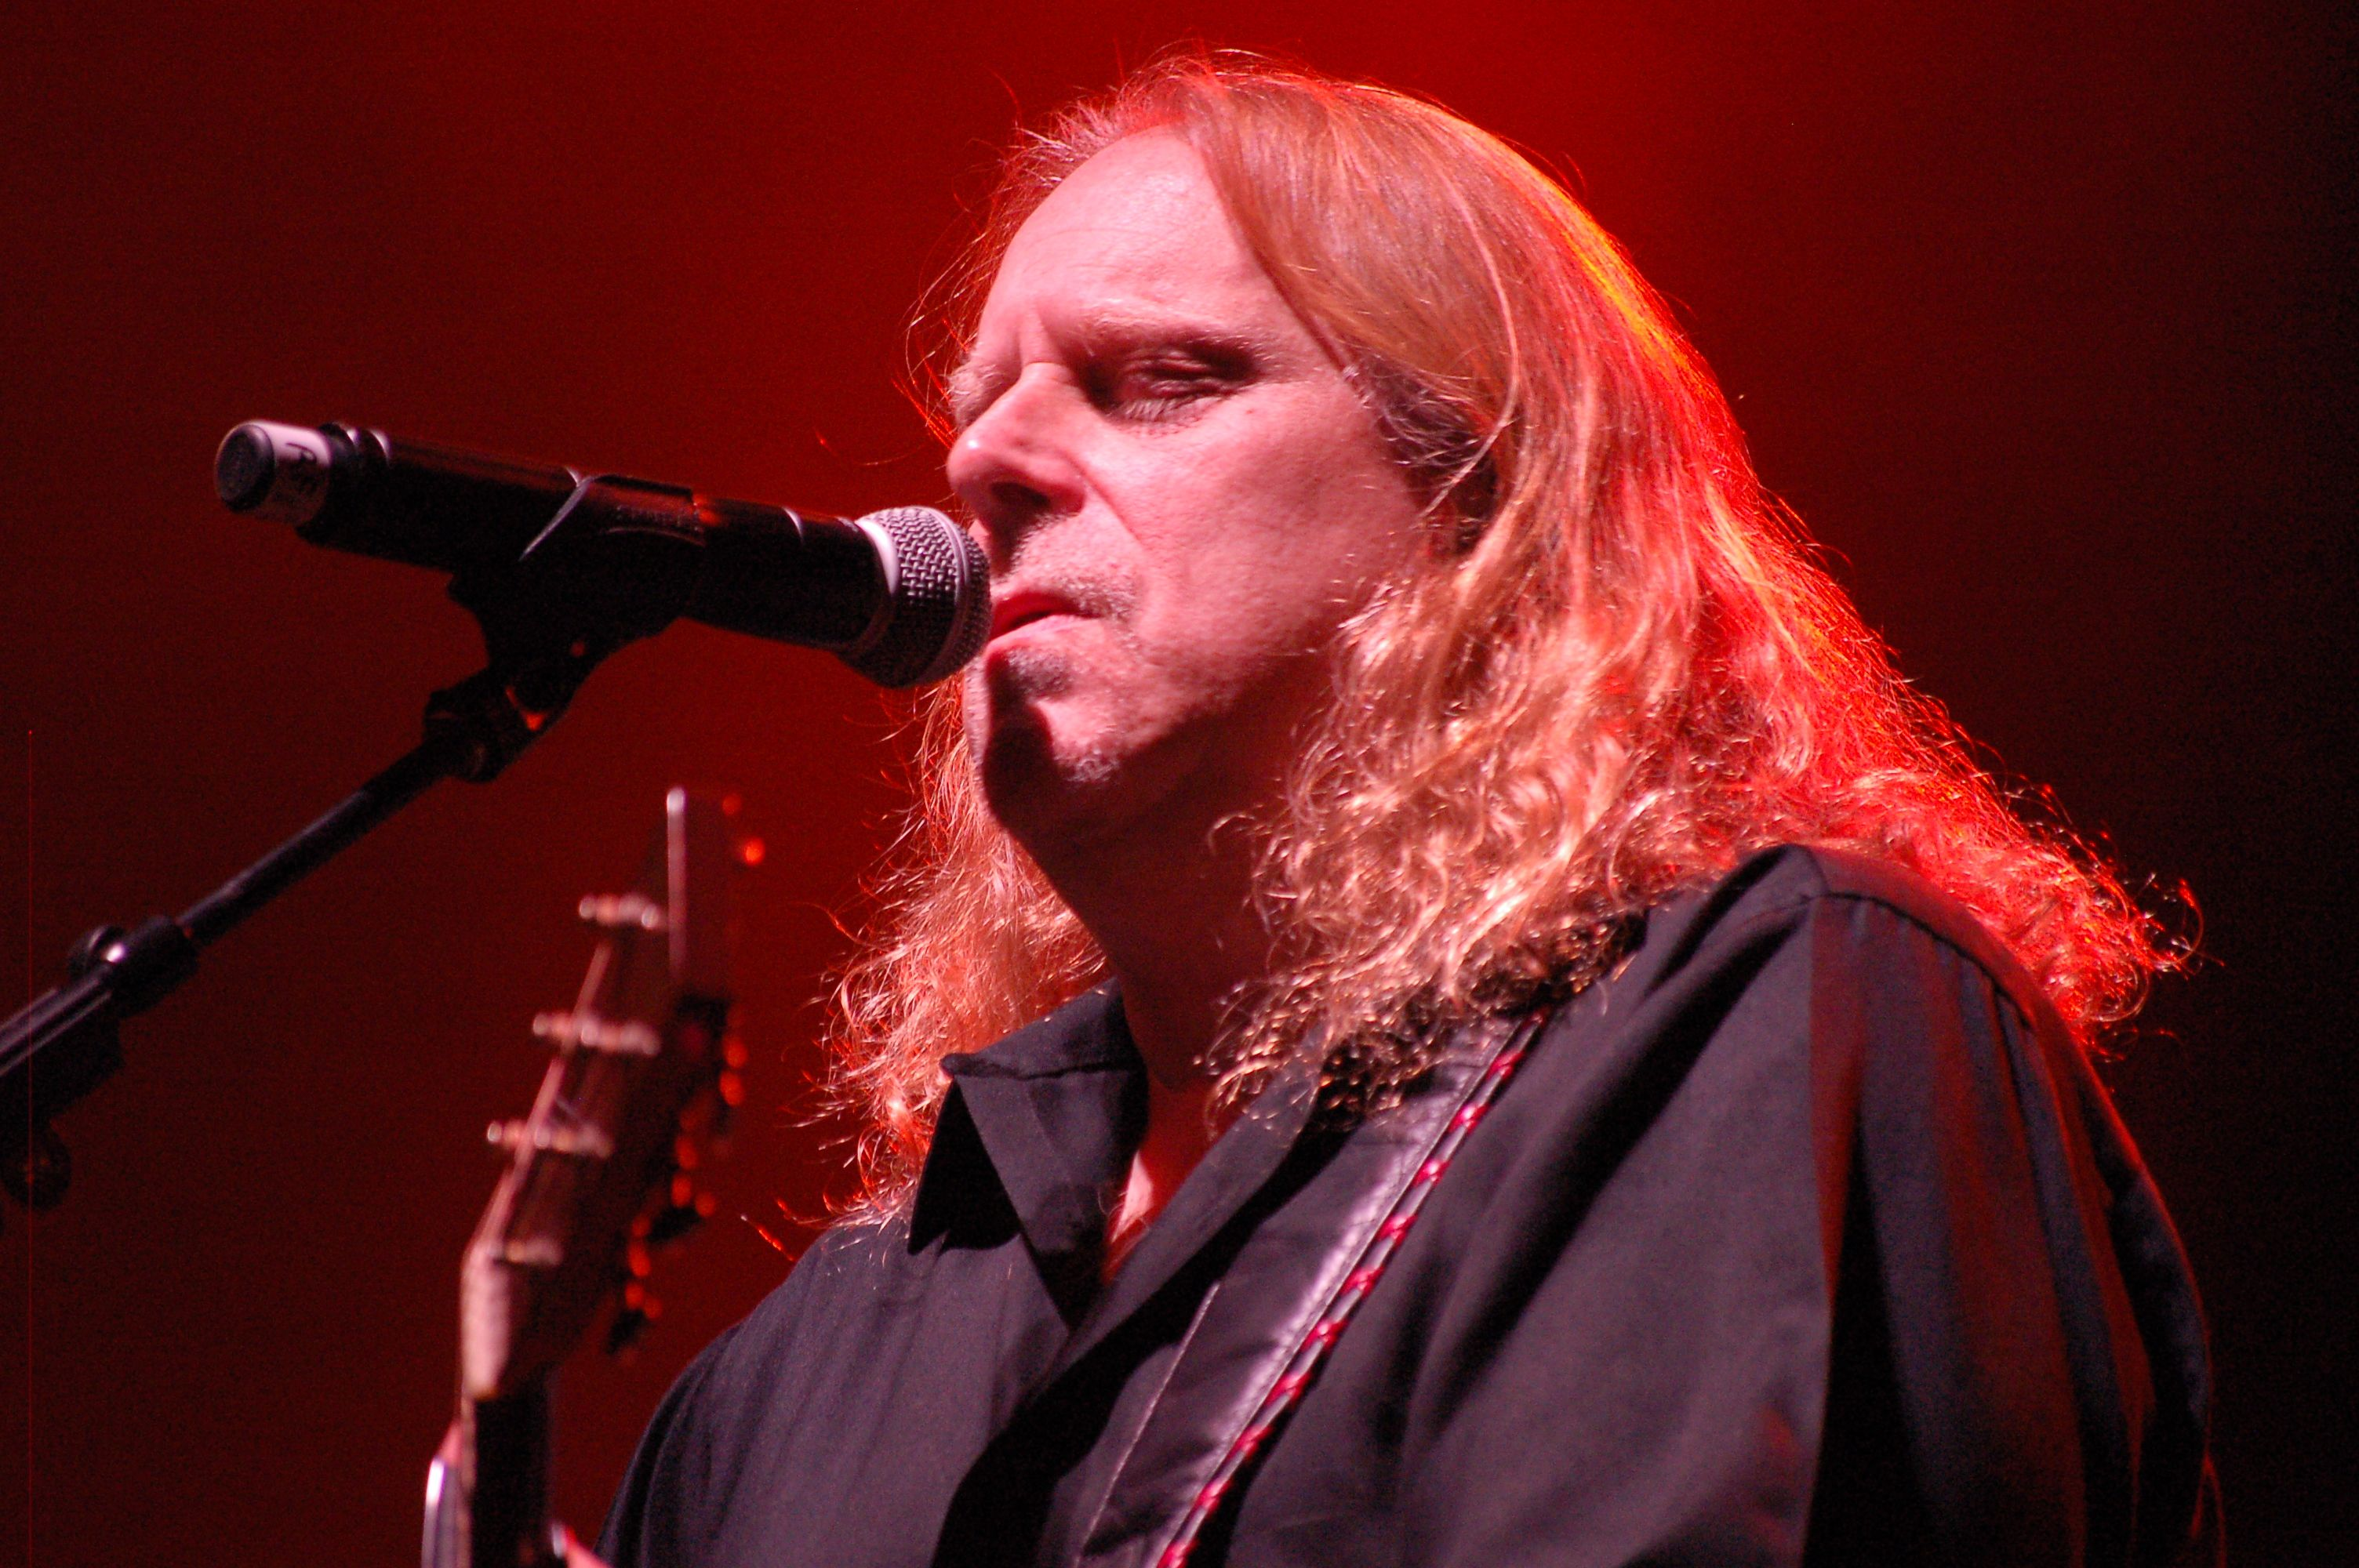 Warren Haynes at the U.S. Cellular Center for his annual Christmas Jam show Dec. 12, 2015./ Photo by Jane Kramer